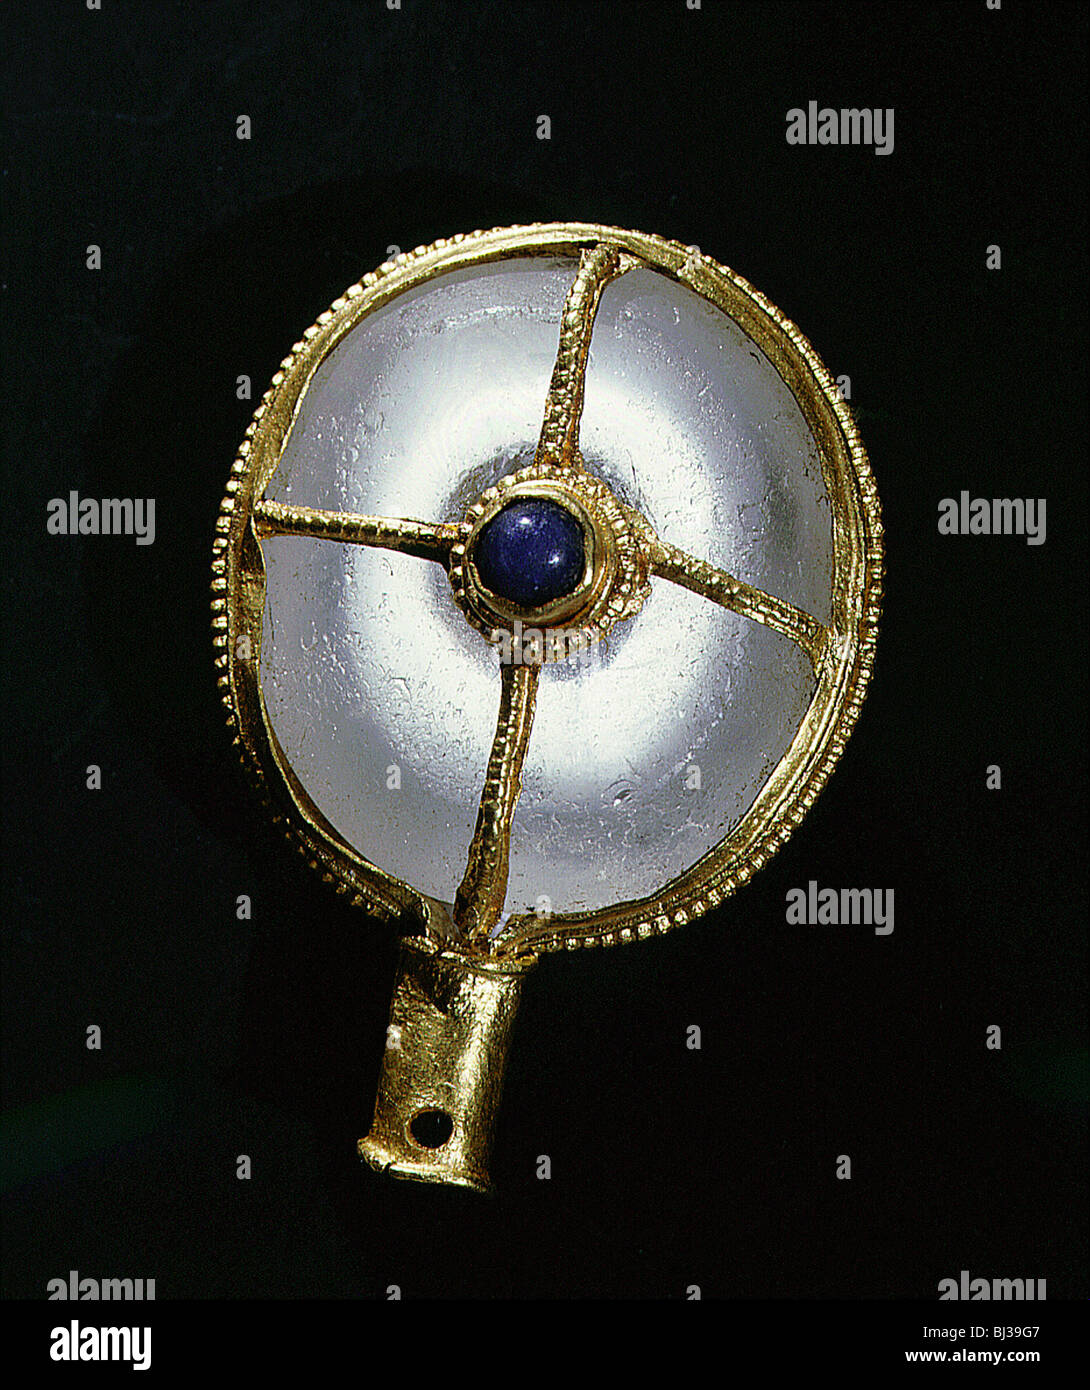 Rare Anglo-Saxon aestel or manuscript pointer, 9th century. Artist: Werner Forman - Stock Image